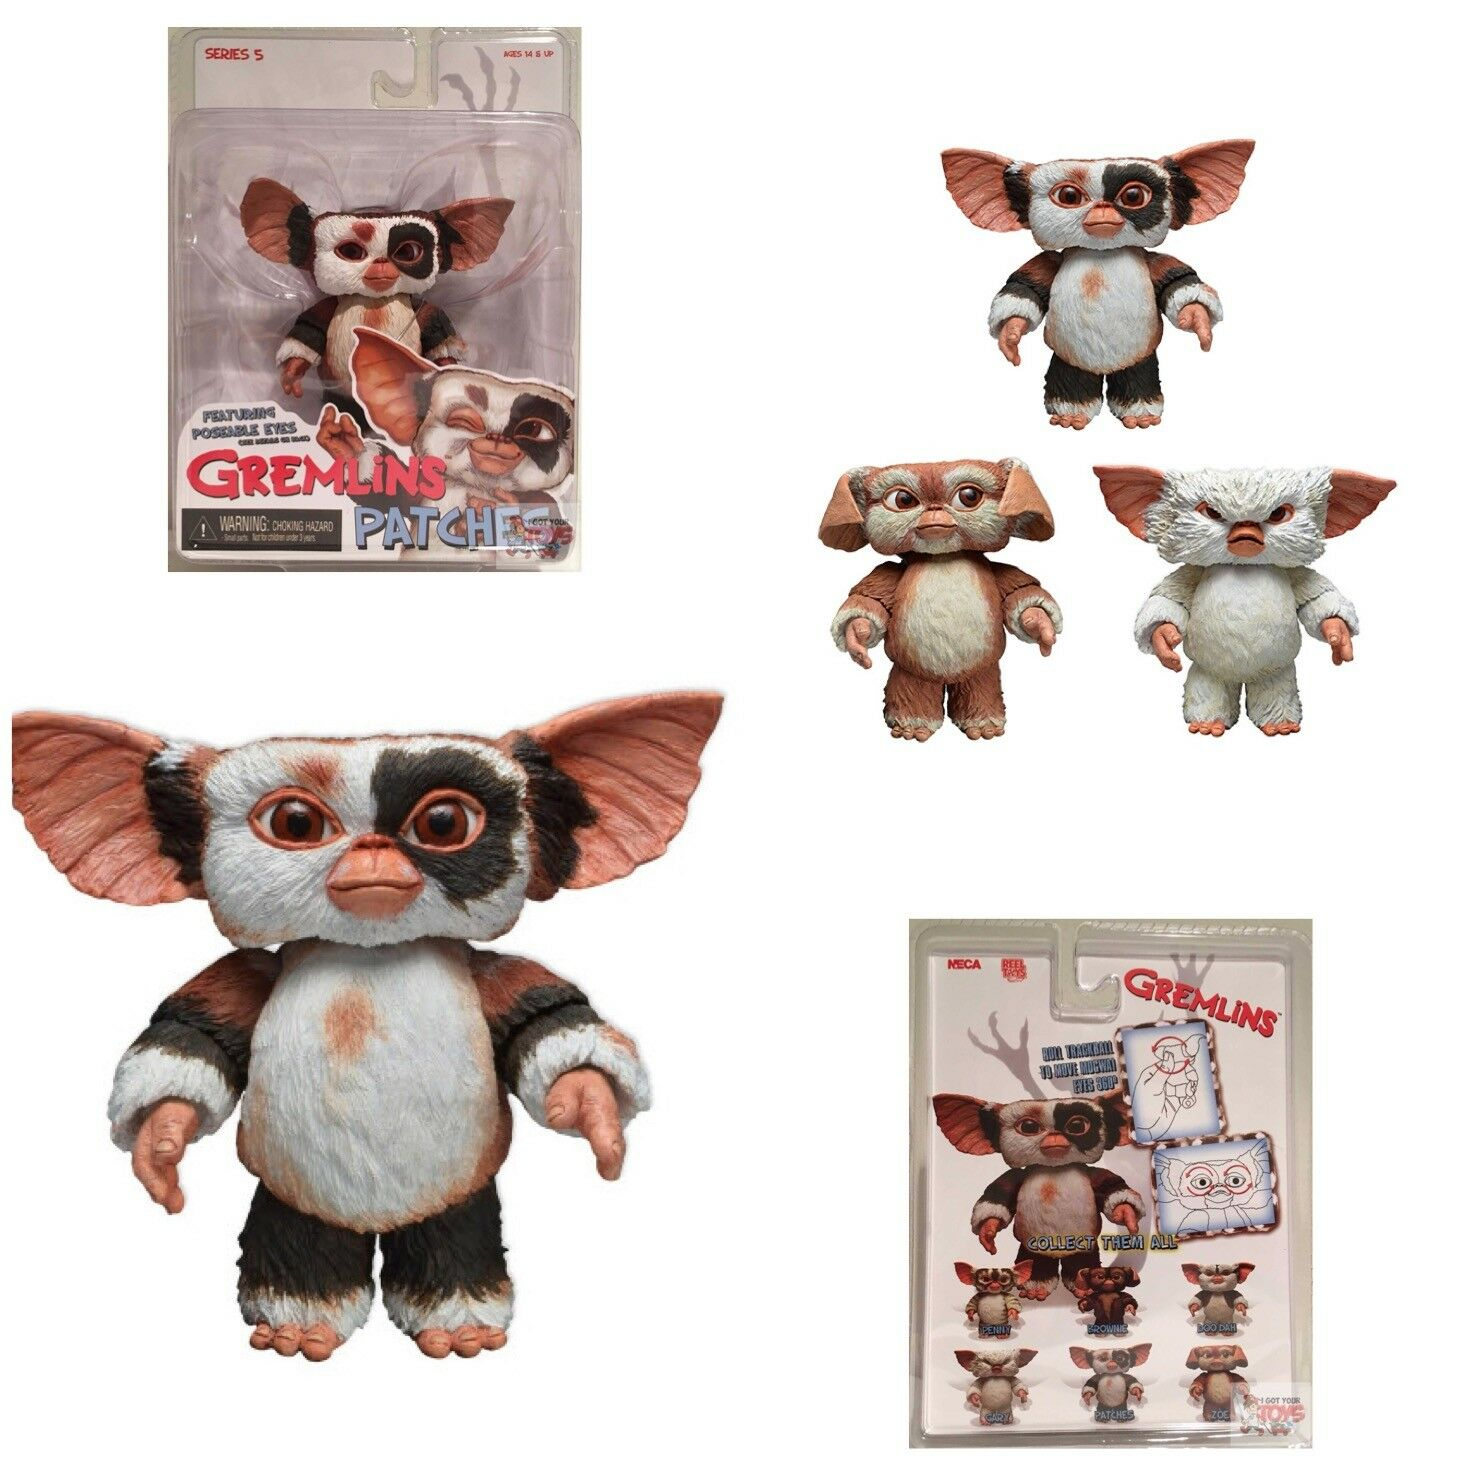 PATCHES MOGWAI NECA Gremlins 2 2 2 series 5 2014 4  Inch LIMITED ACTION FIGURE c7461e